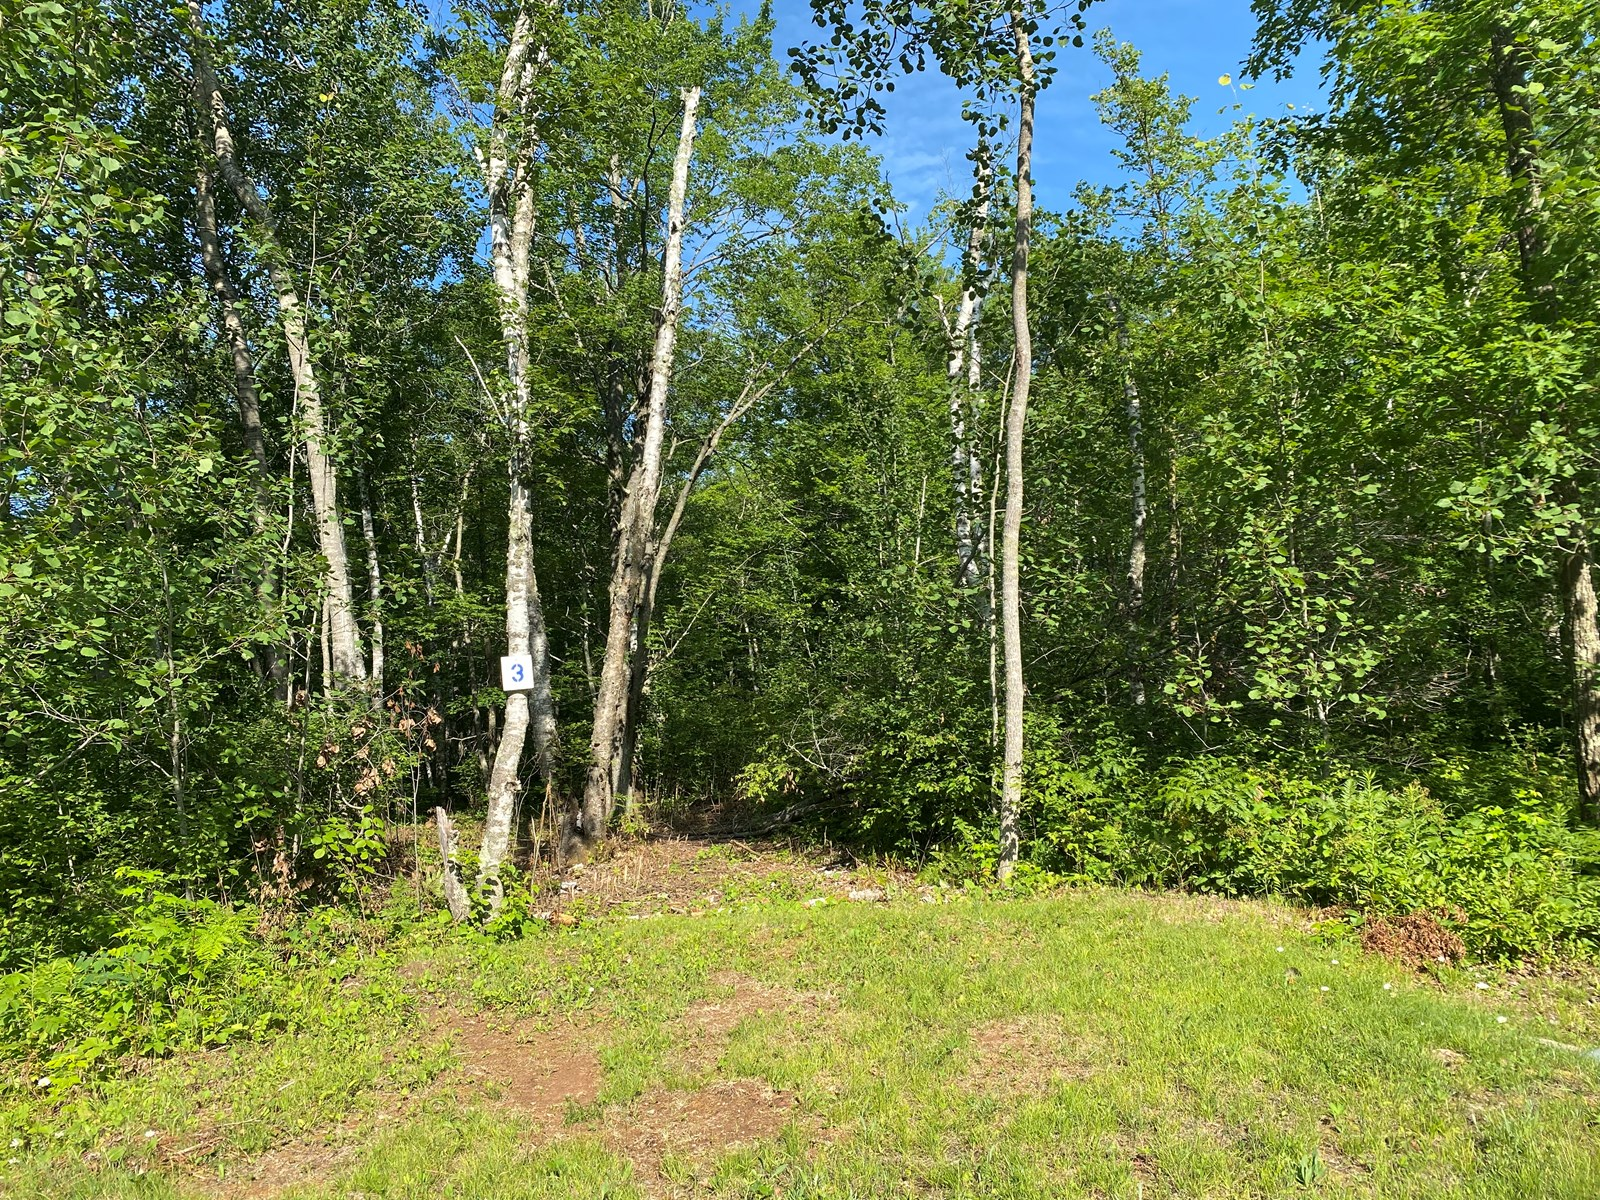 Ready-To-Build 2.2 Acre Lot For Sale In Sandstone MN